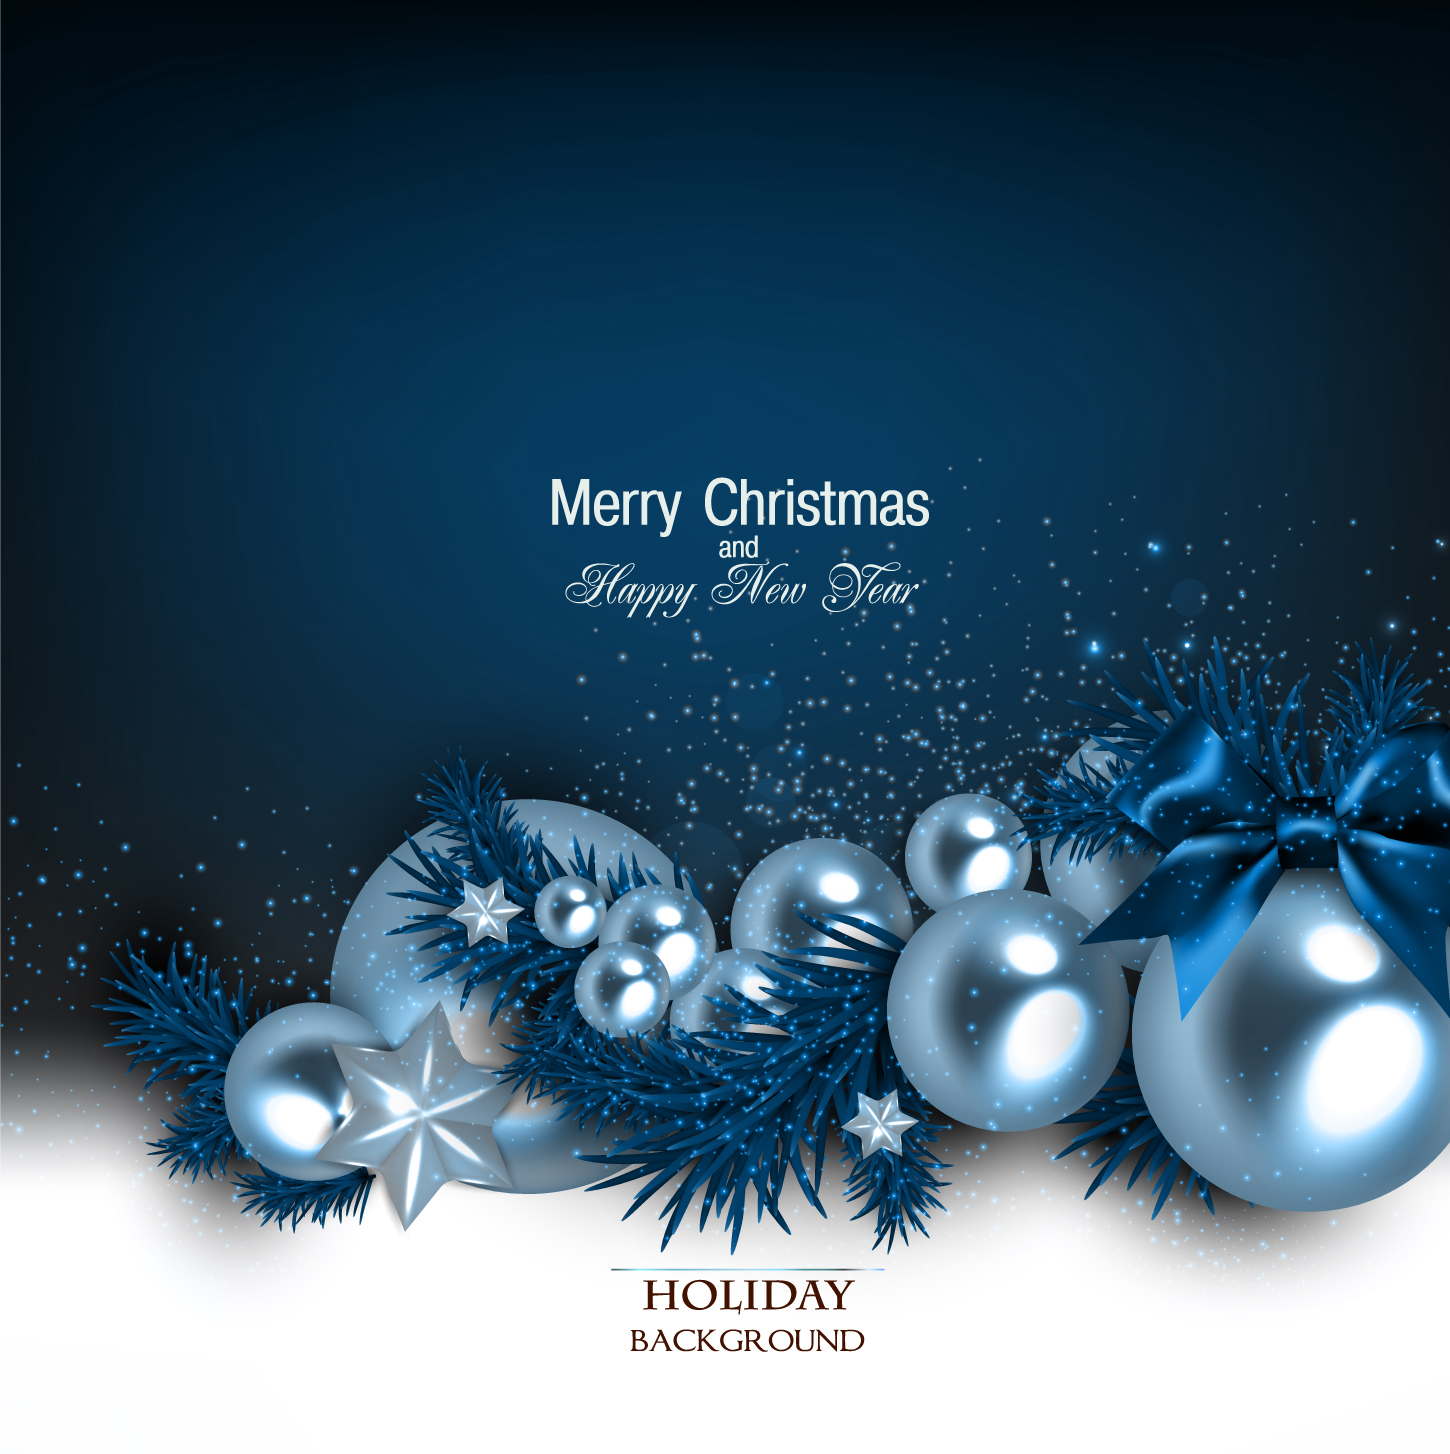 shiny christmas holiday background vectors 02 vector background shiny christmas holiday background vectors 02